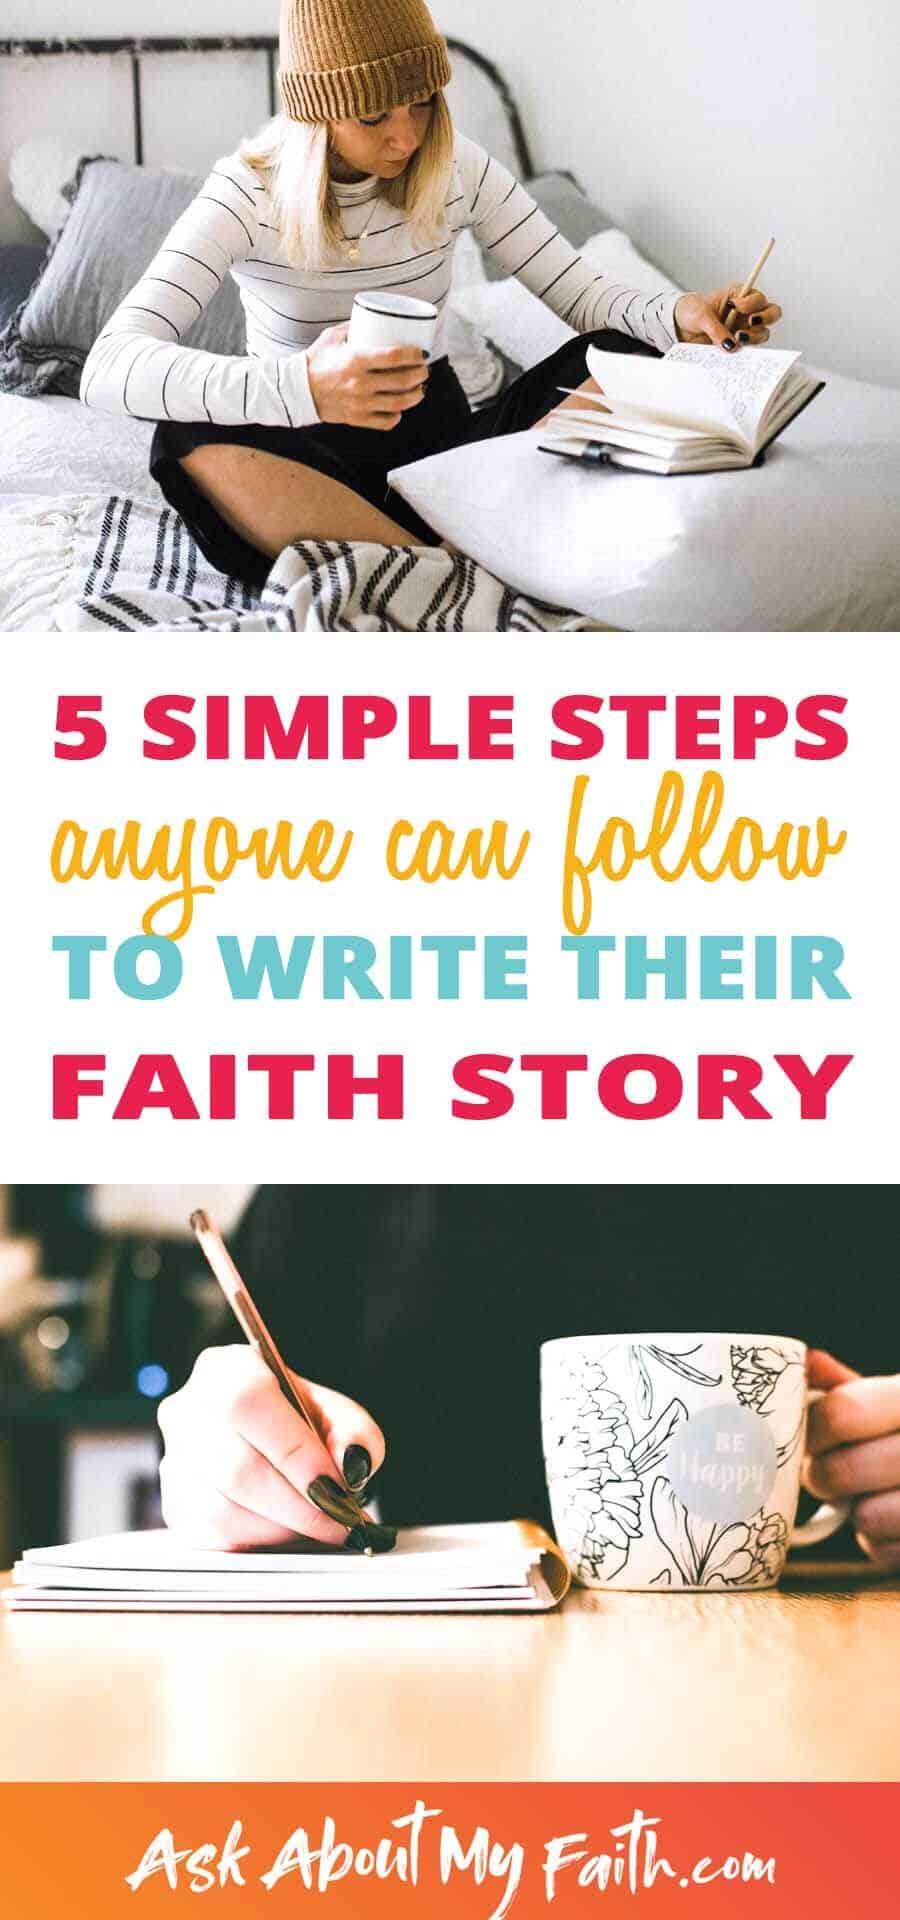 5 Simple Steps to Write Your Faith Story | Evangelism | Gospel | Christianity